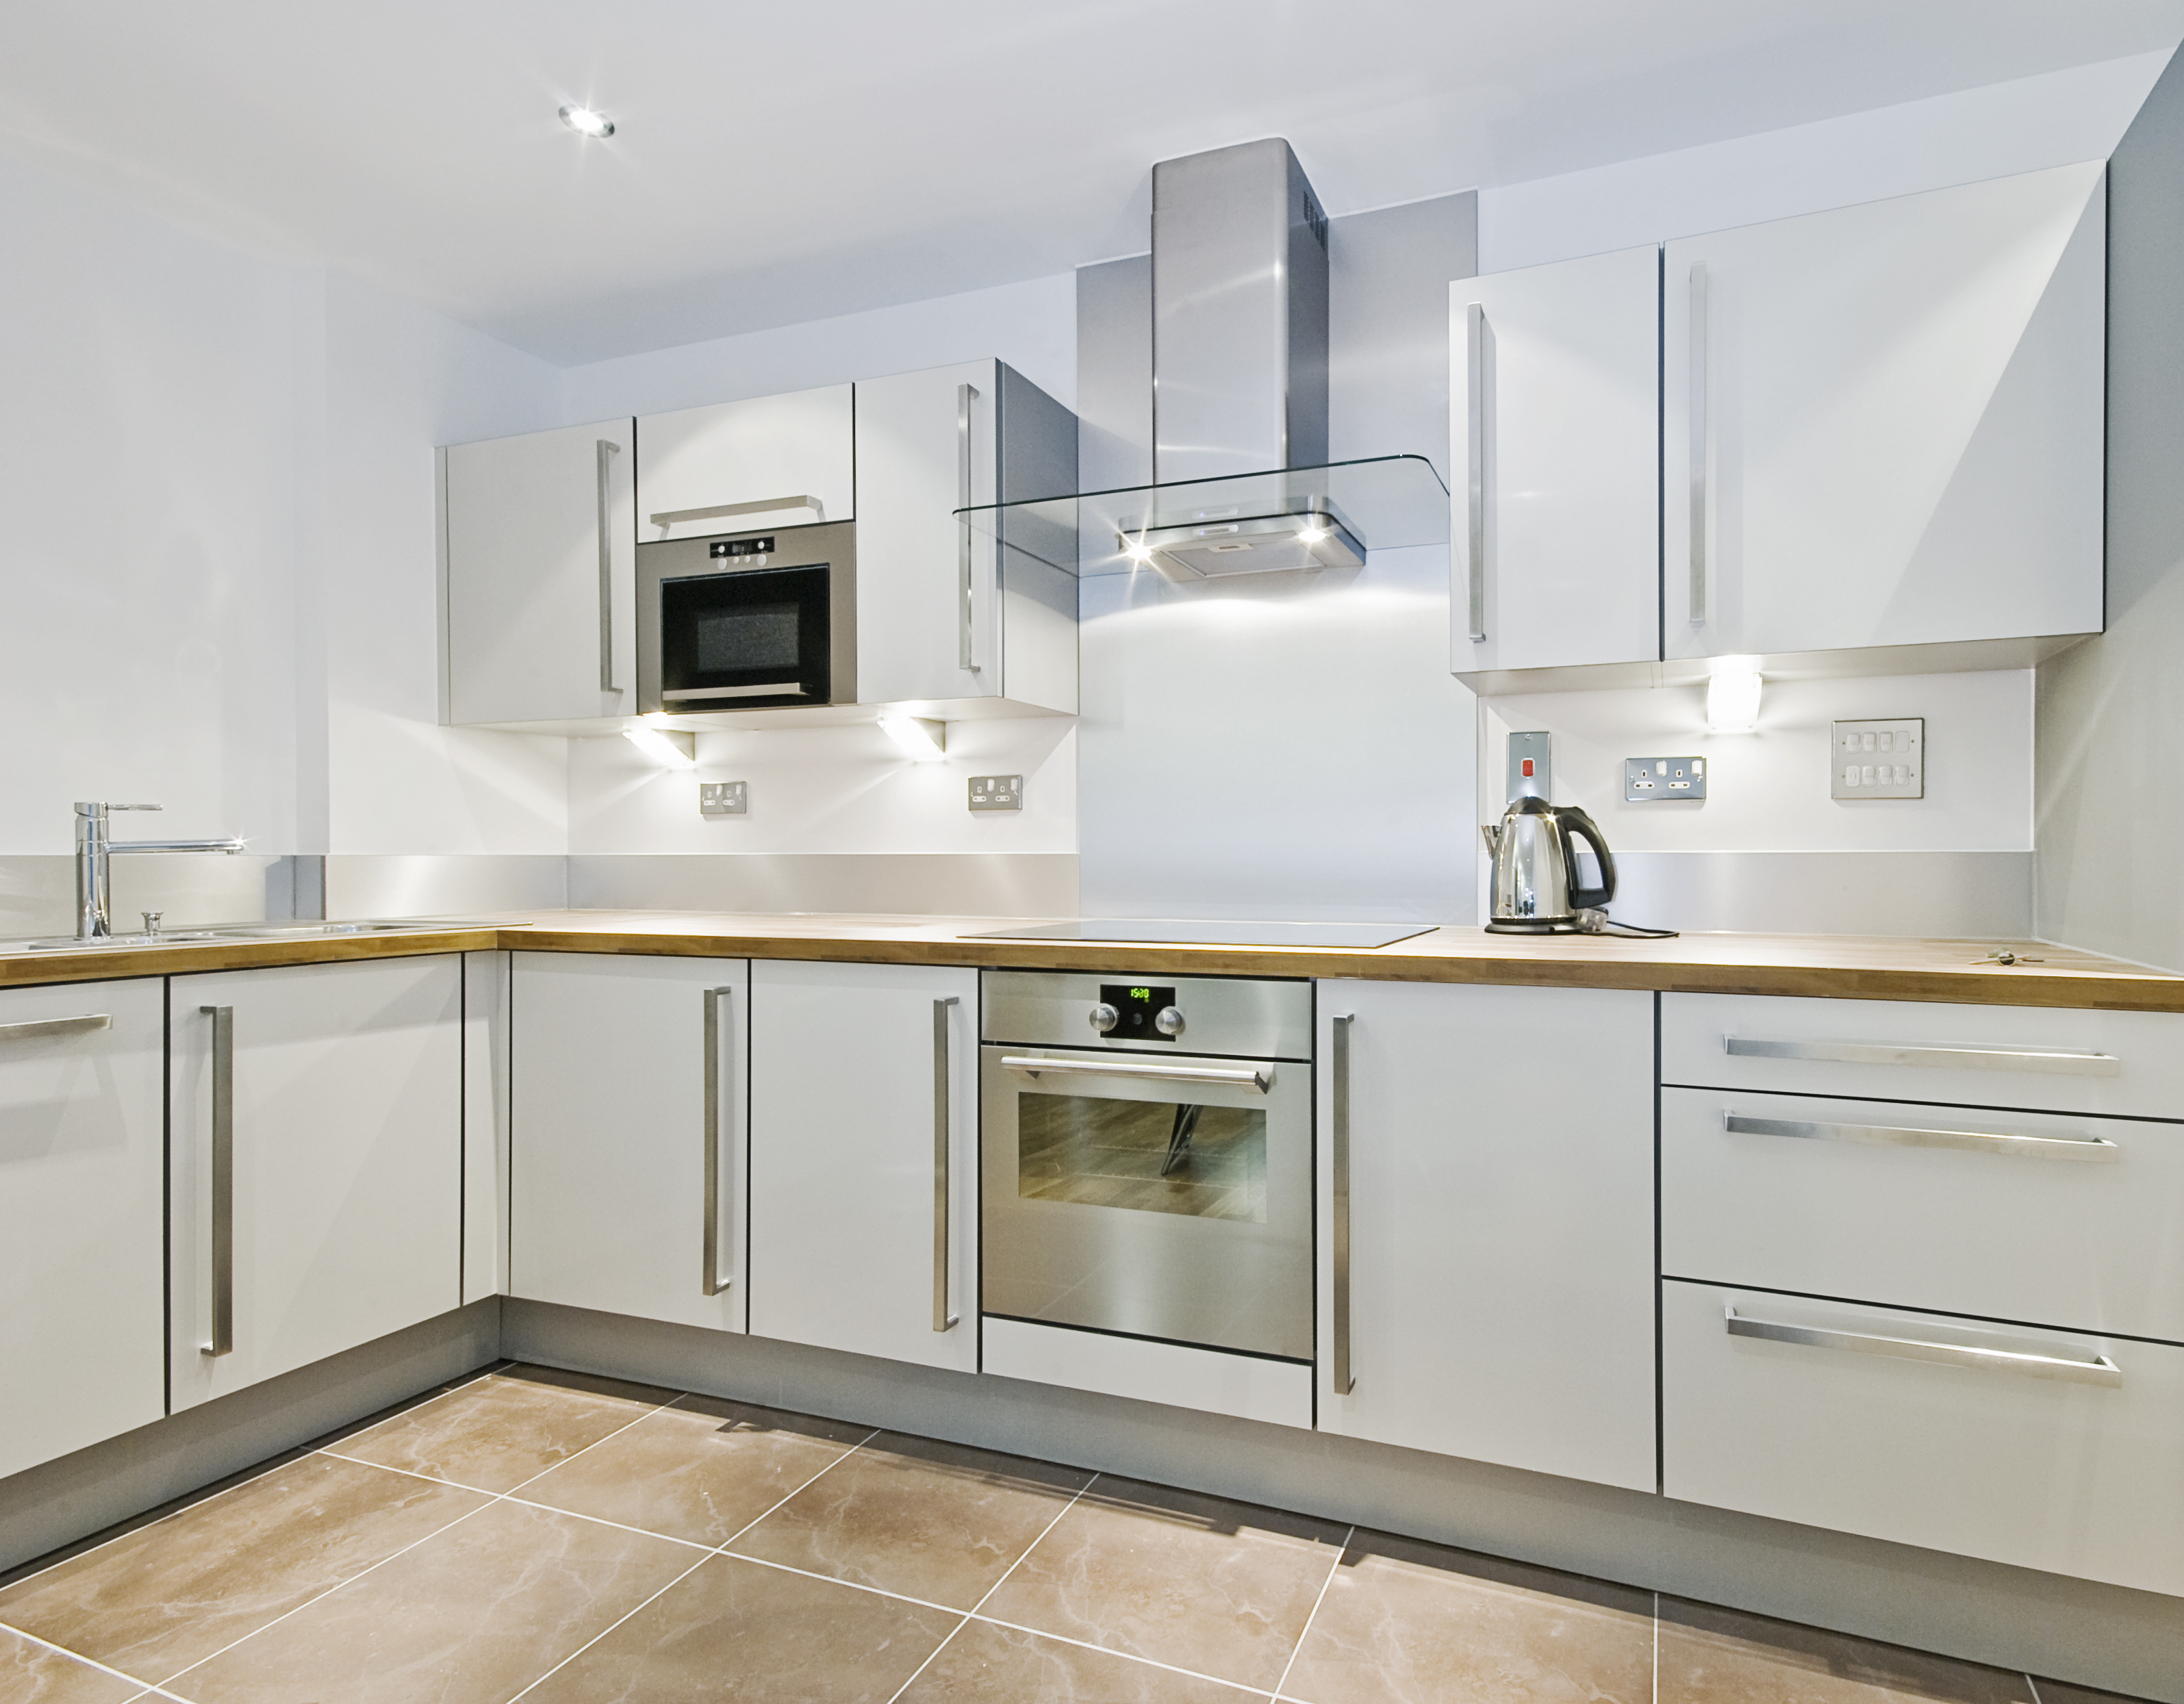 modern kitchen counter in   l   shape with wooden worktop modern kitchen cabinets for a chic look   great idea hub  rh   greatideahub com